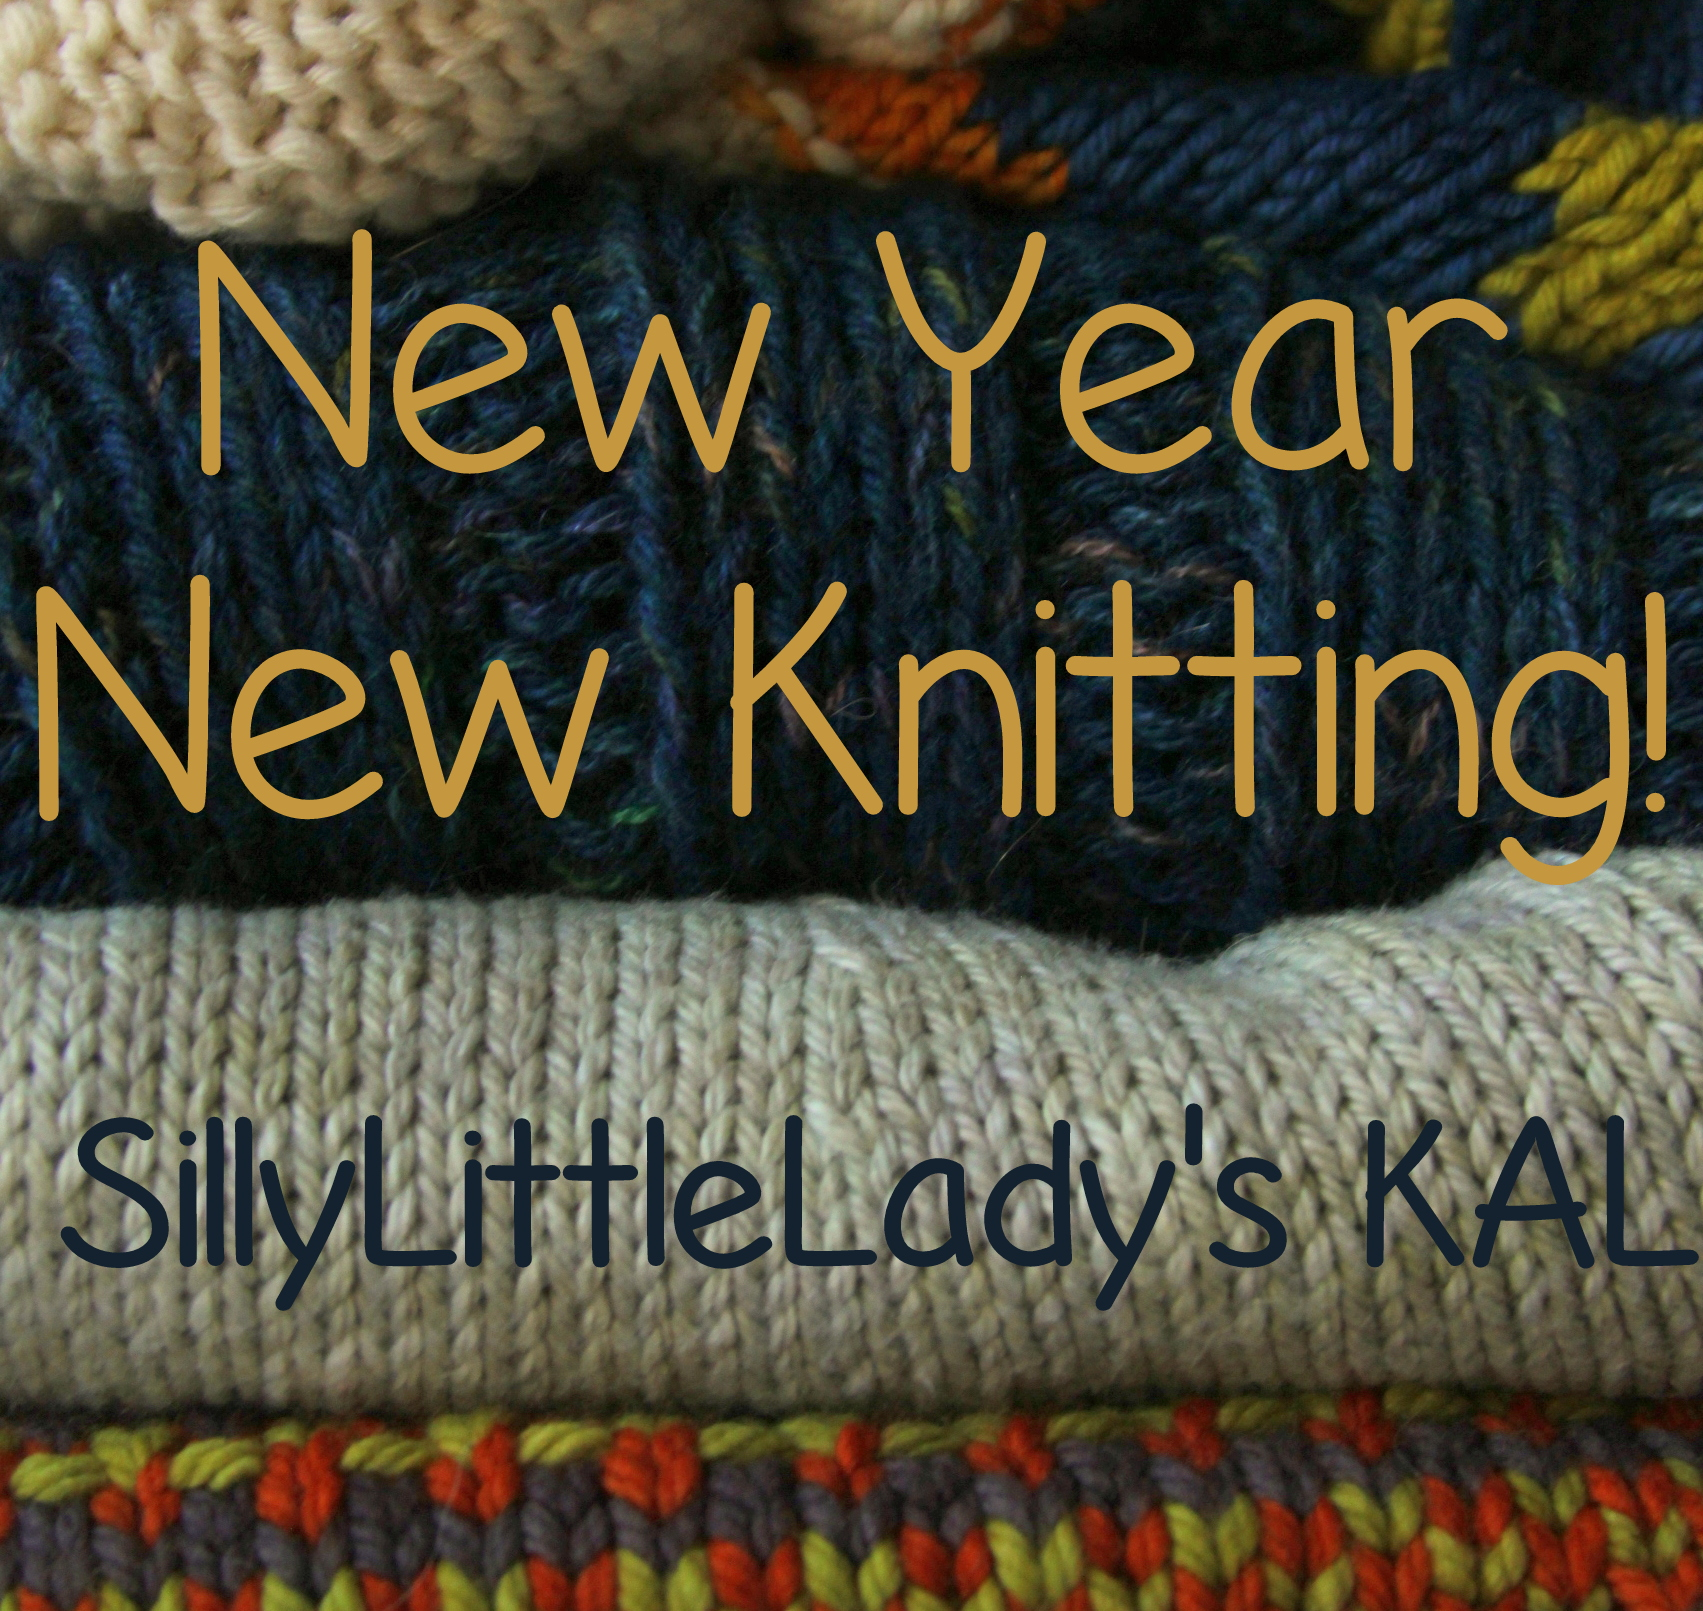 New Year, New Knitting! KAL